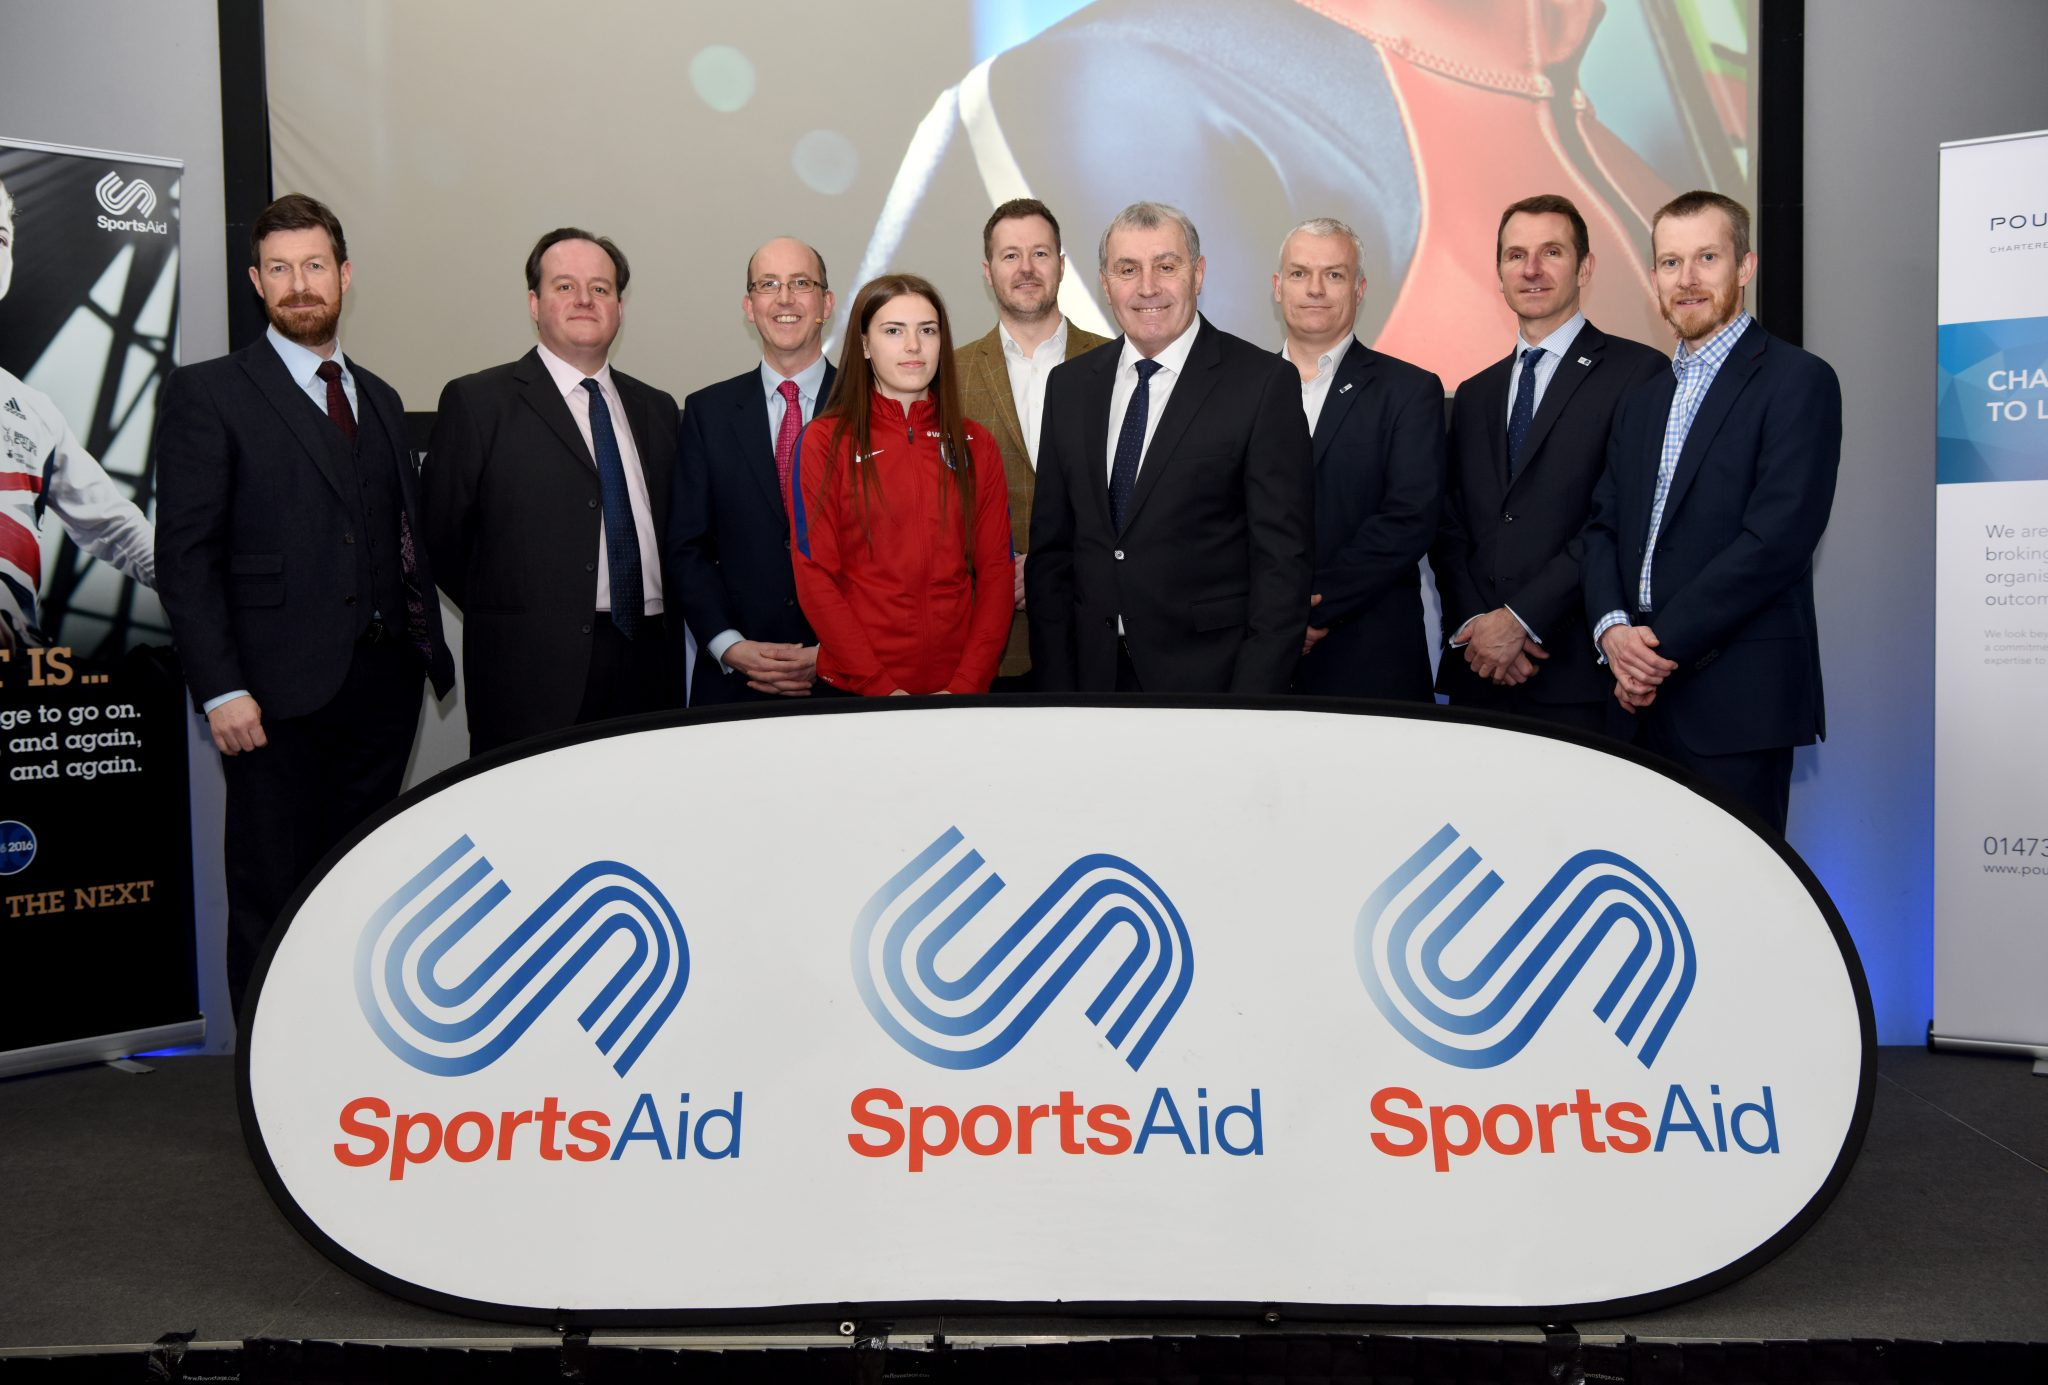 Football legend helps Ipswich businesses raise vital funding for local sporting prospects